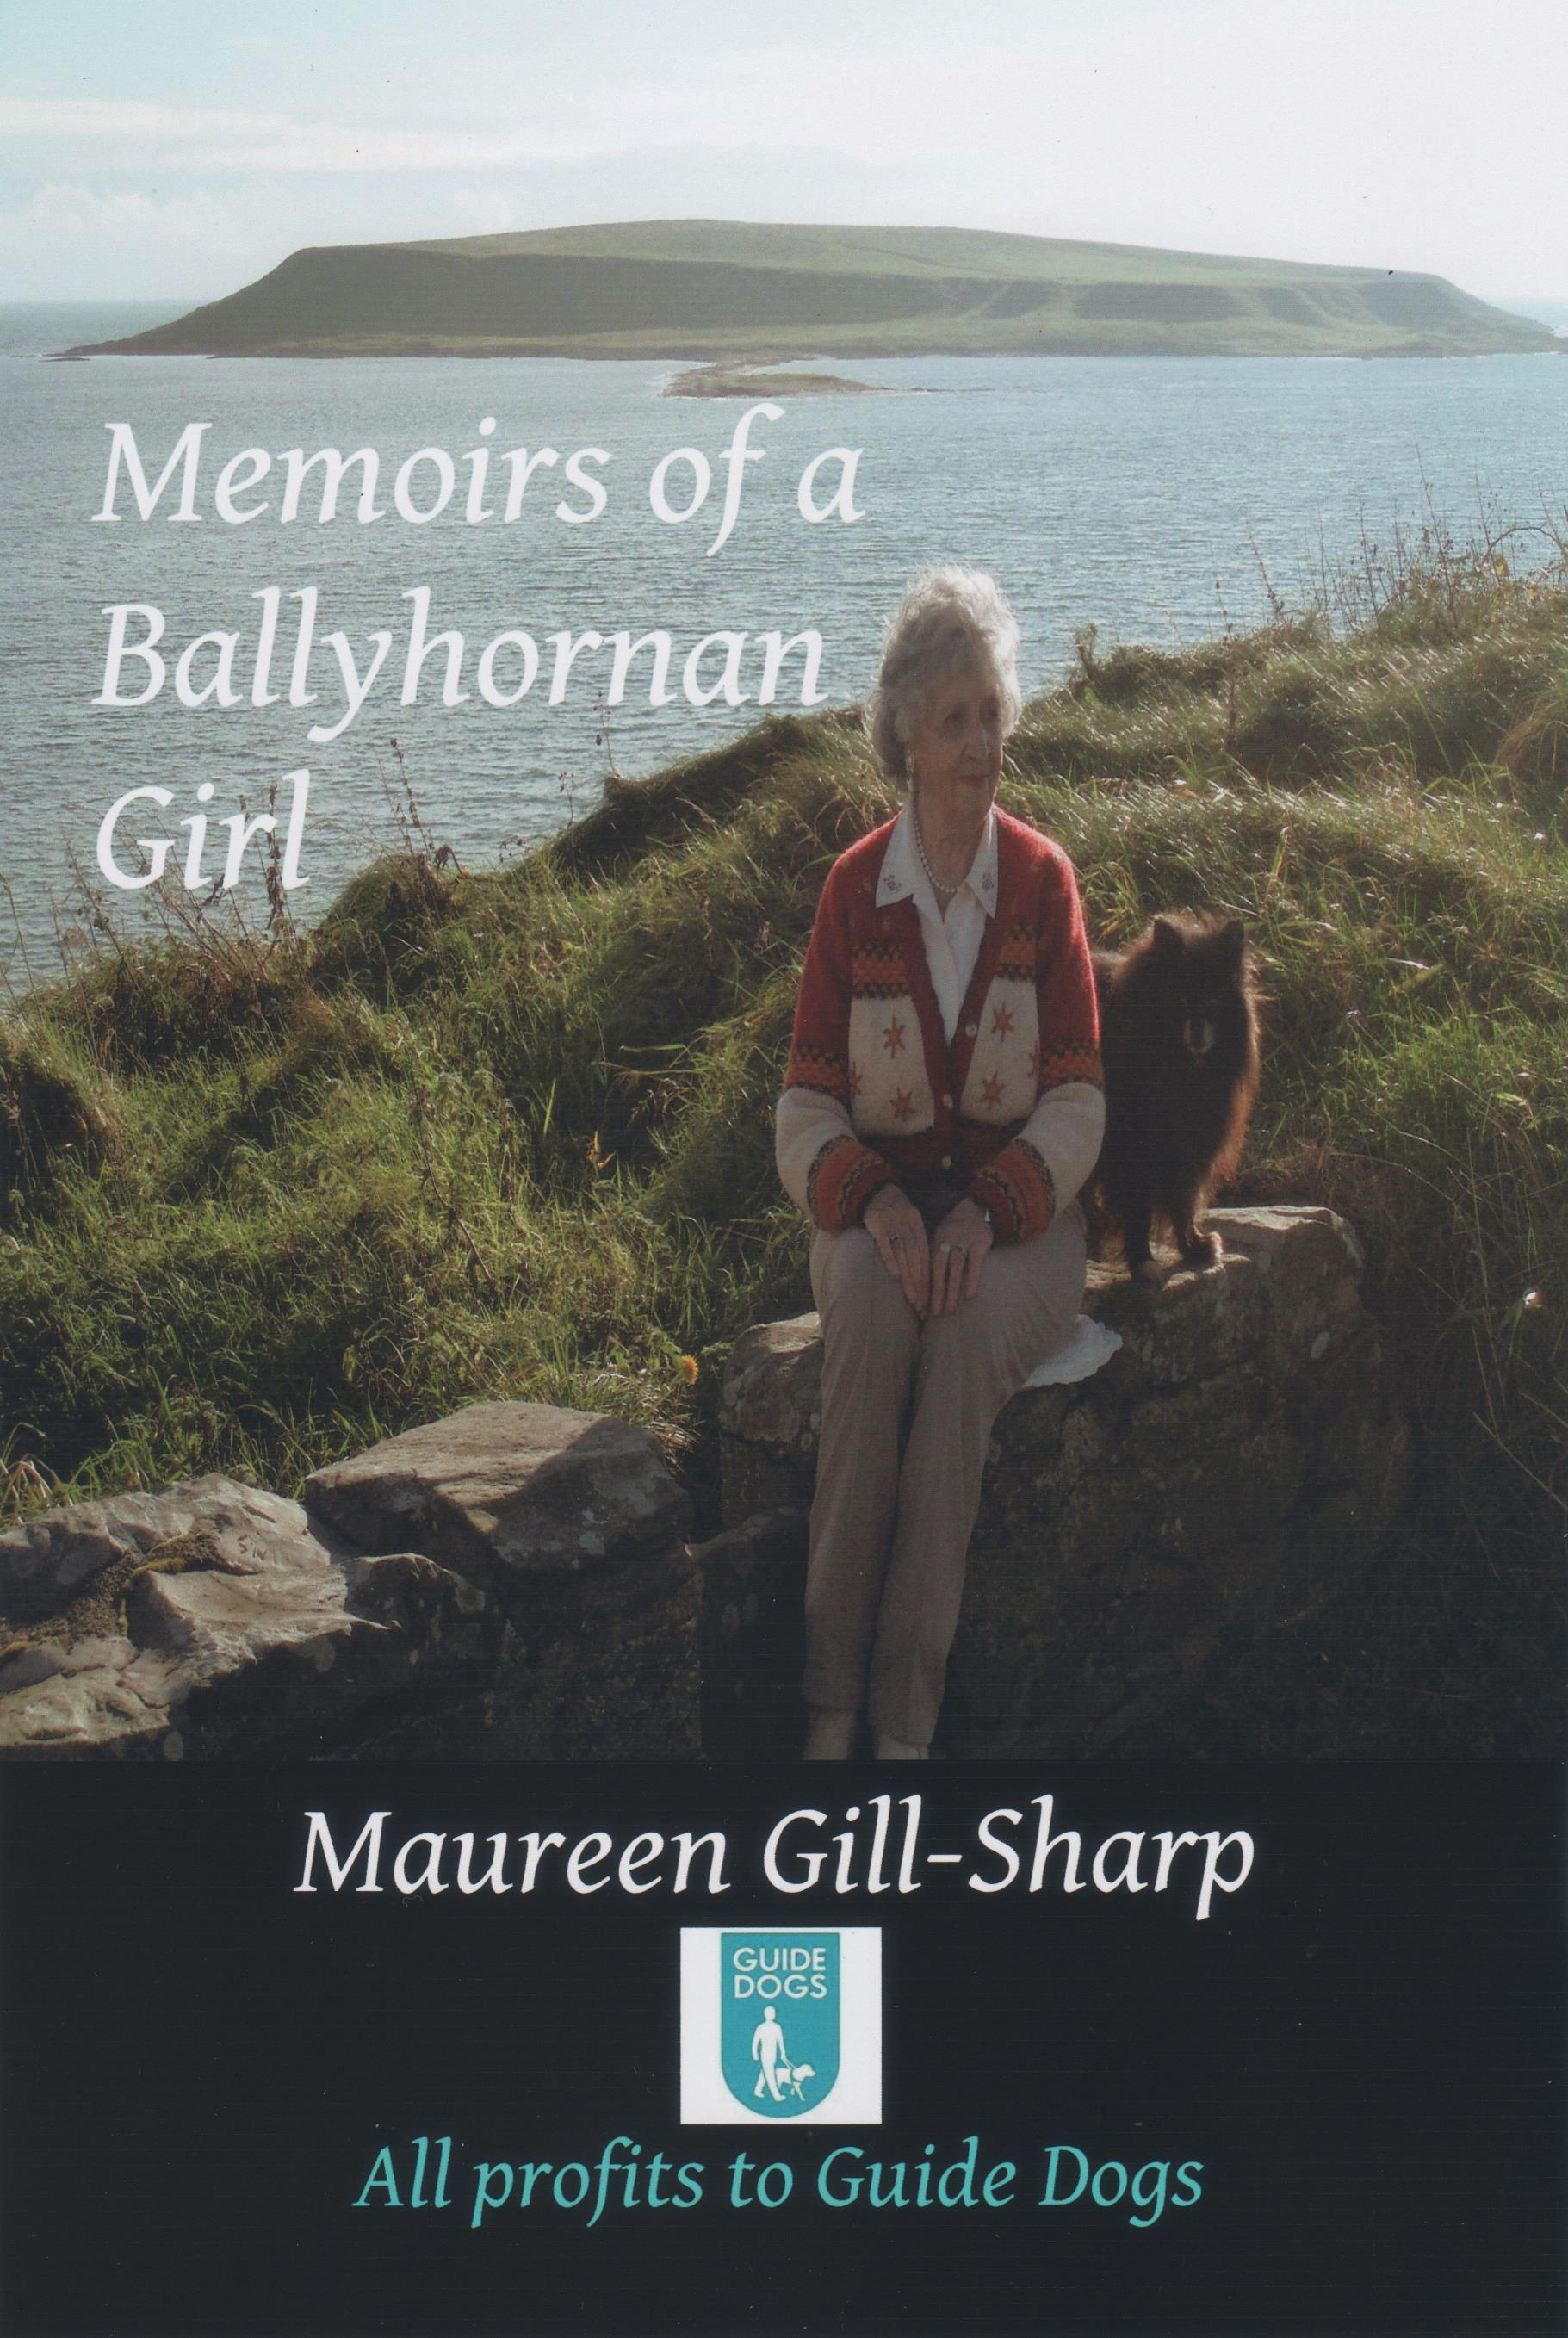 MEMOIRS OF A BALLYHORNAN GIRL - Books For Sale in Ballyhornan and Strangford, County Down